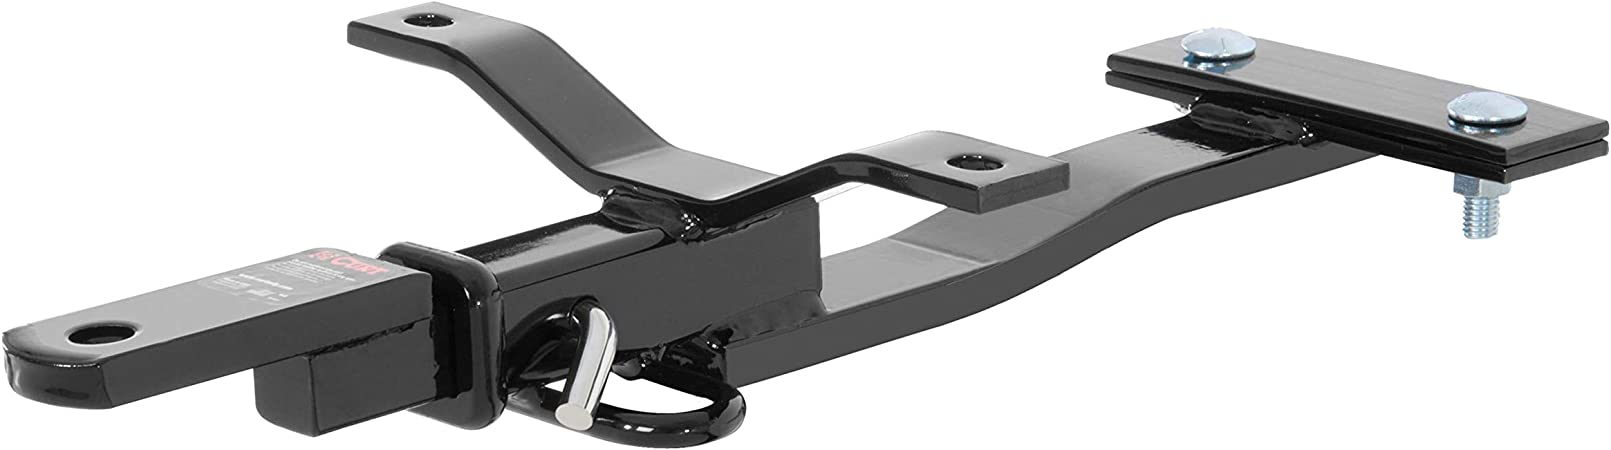 L300 LW2 CURT 112983 Class 1 Trailer Hitch with Ball Mount L200 LW200 1-1//4-Inch Receiver  for Select Saturn L100 LW300 LW1